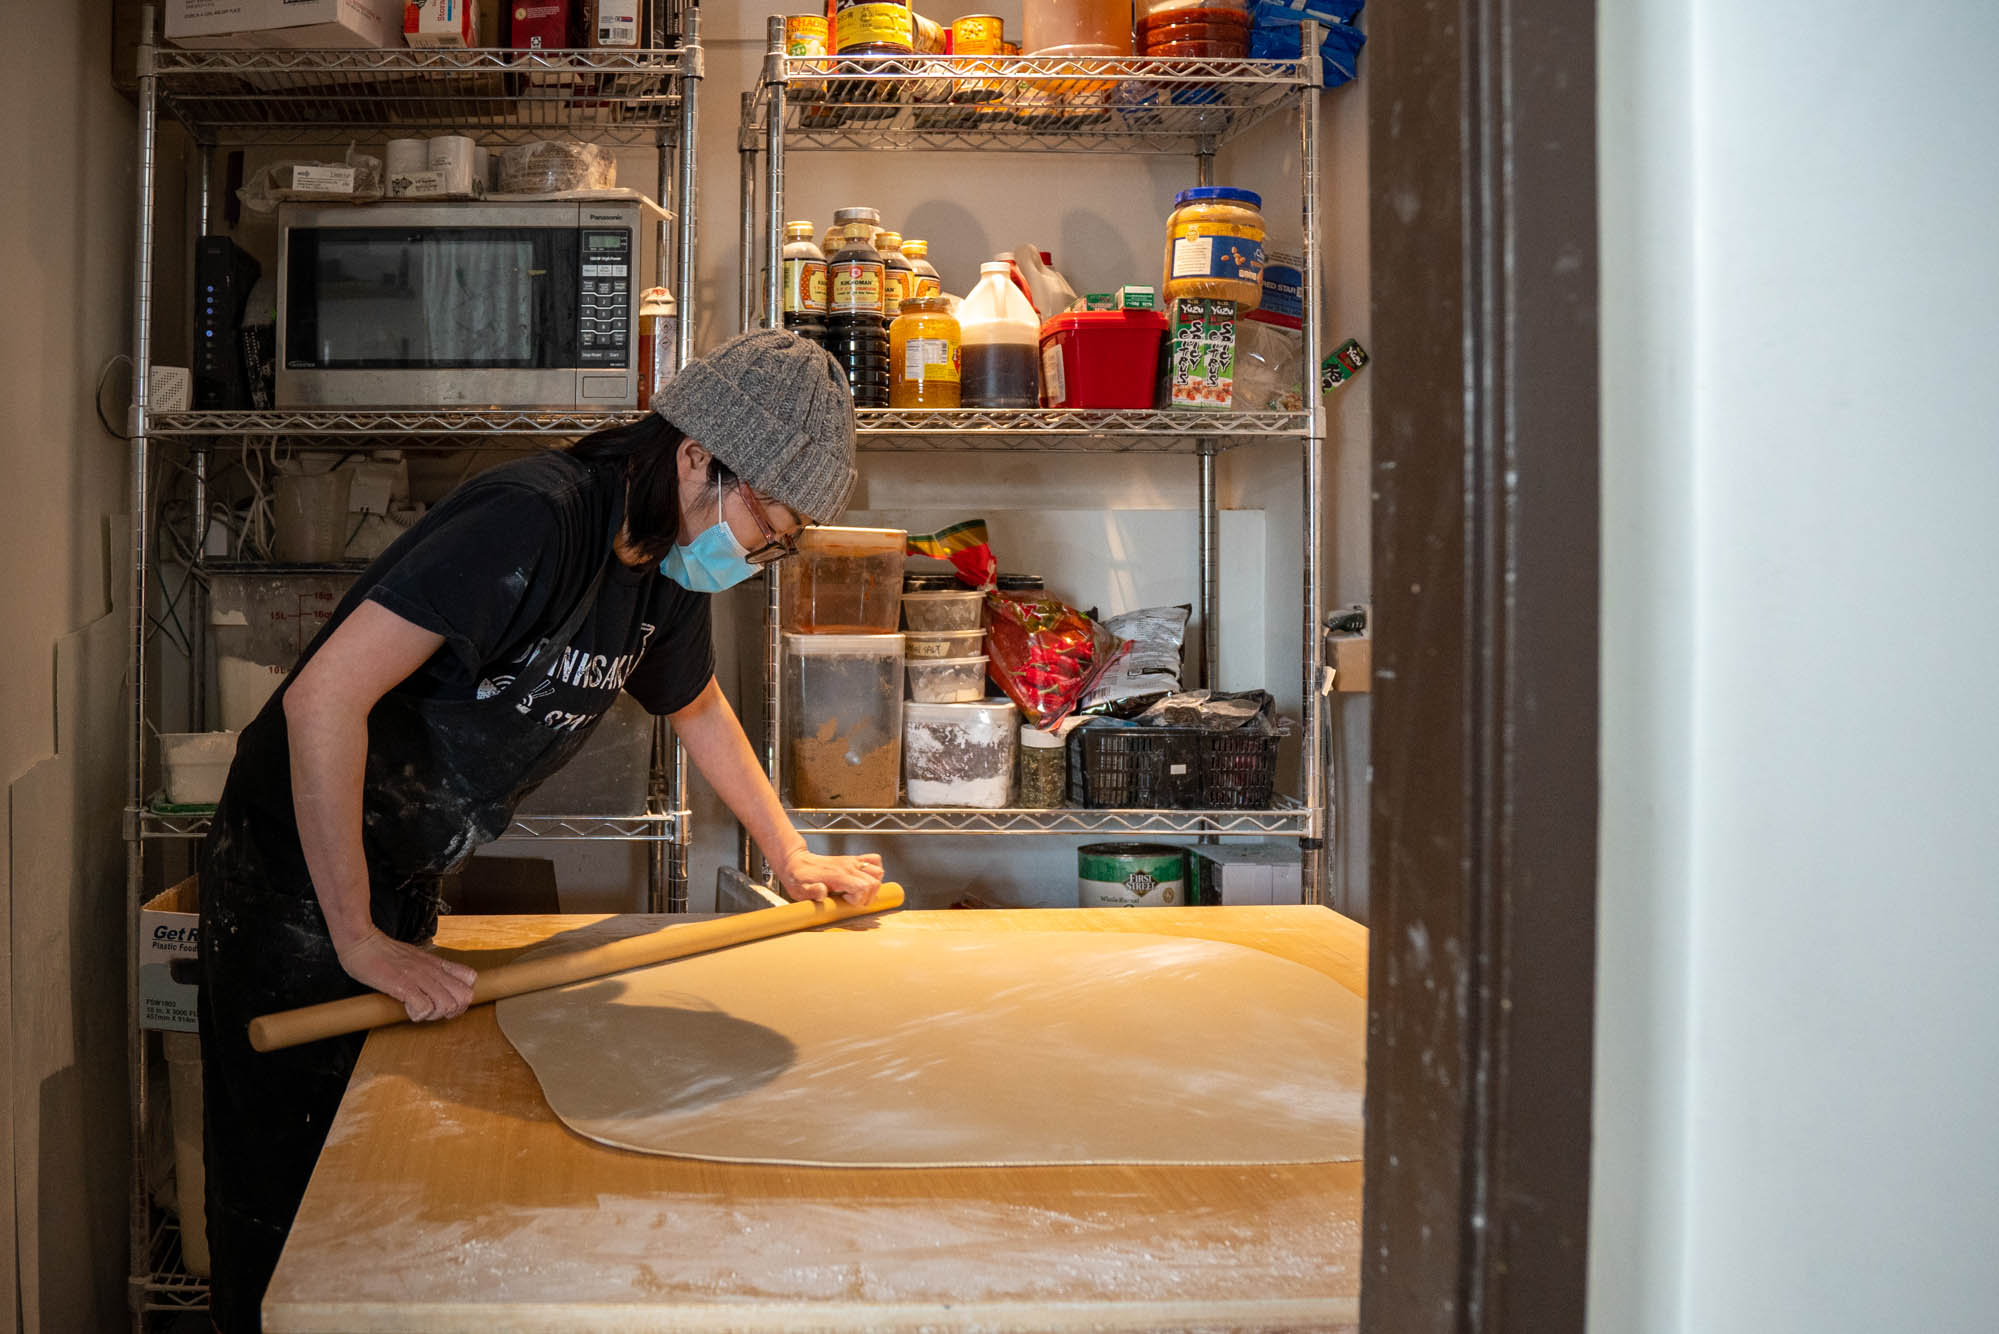 Tamron 17-70mm f/2.8 for Sony sample photo of woman with dough